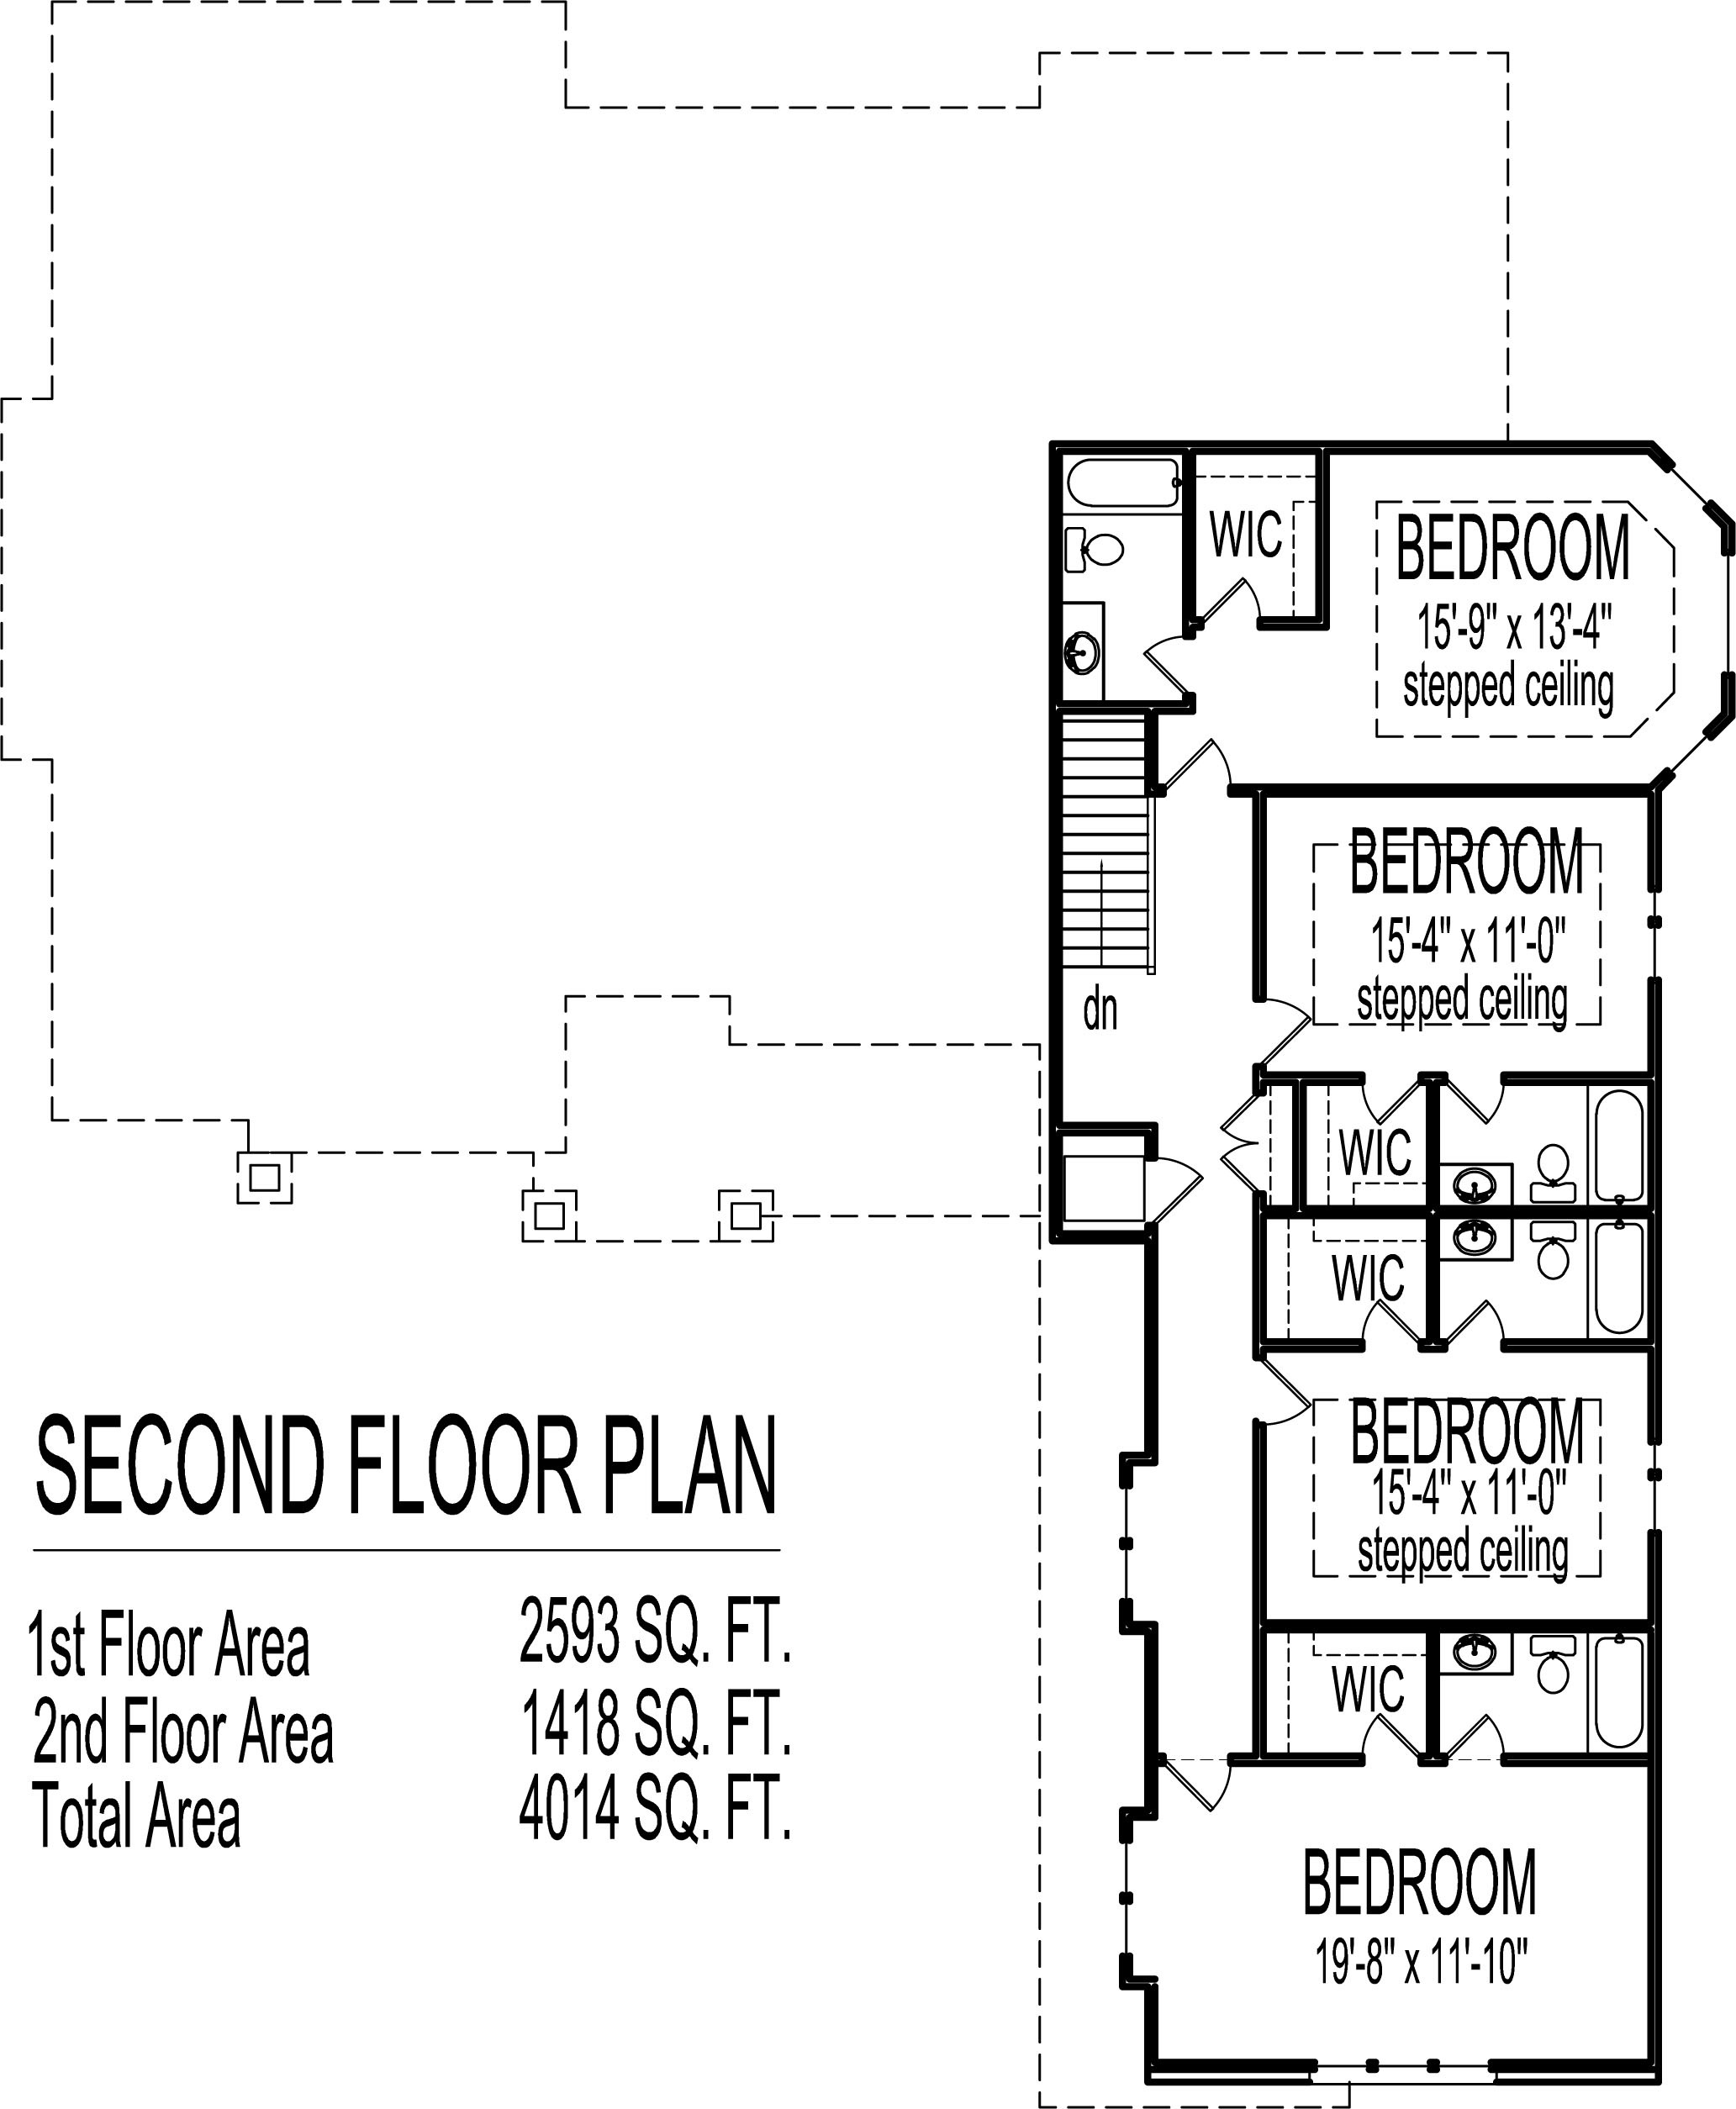 Mansion House Plans 8 Bedrooms Beautiful 2 Story House Floor Plans 6 Bedroom Craftsman Home Design